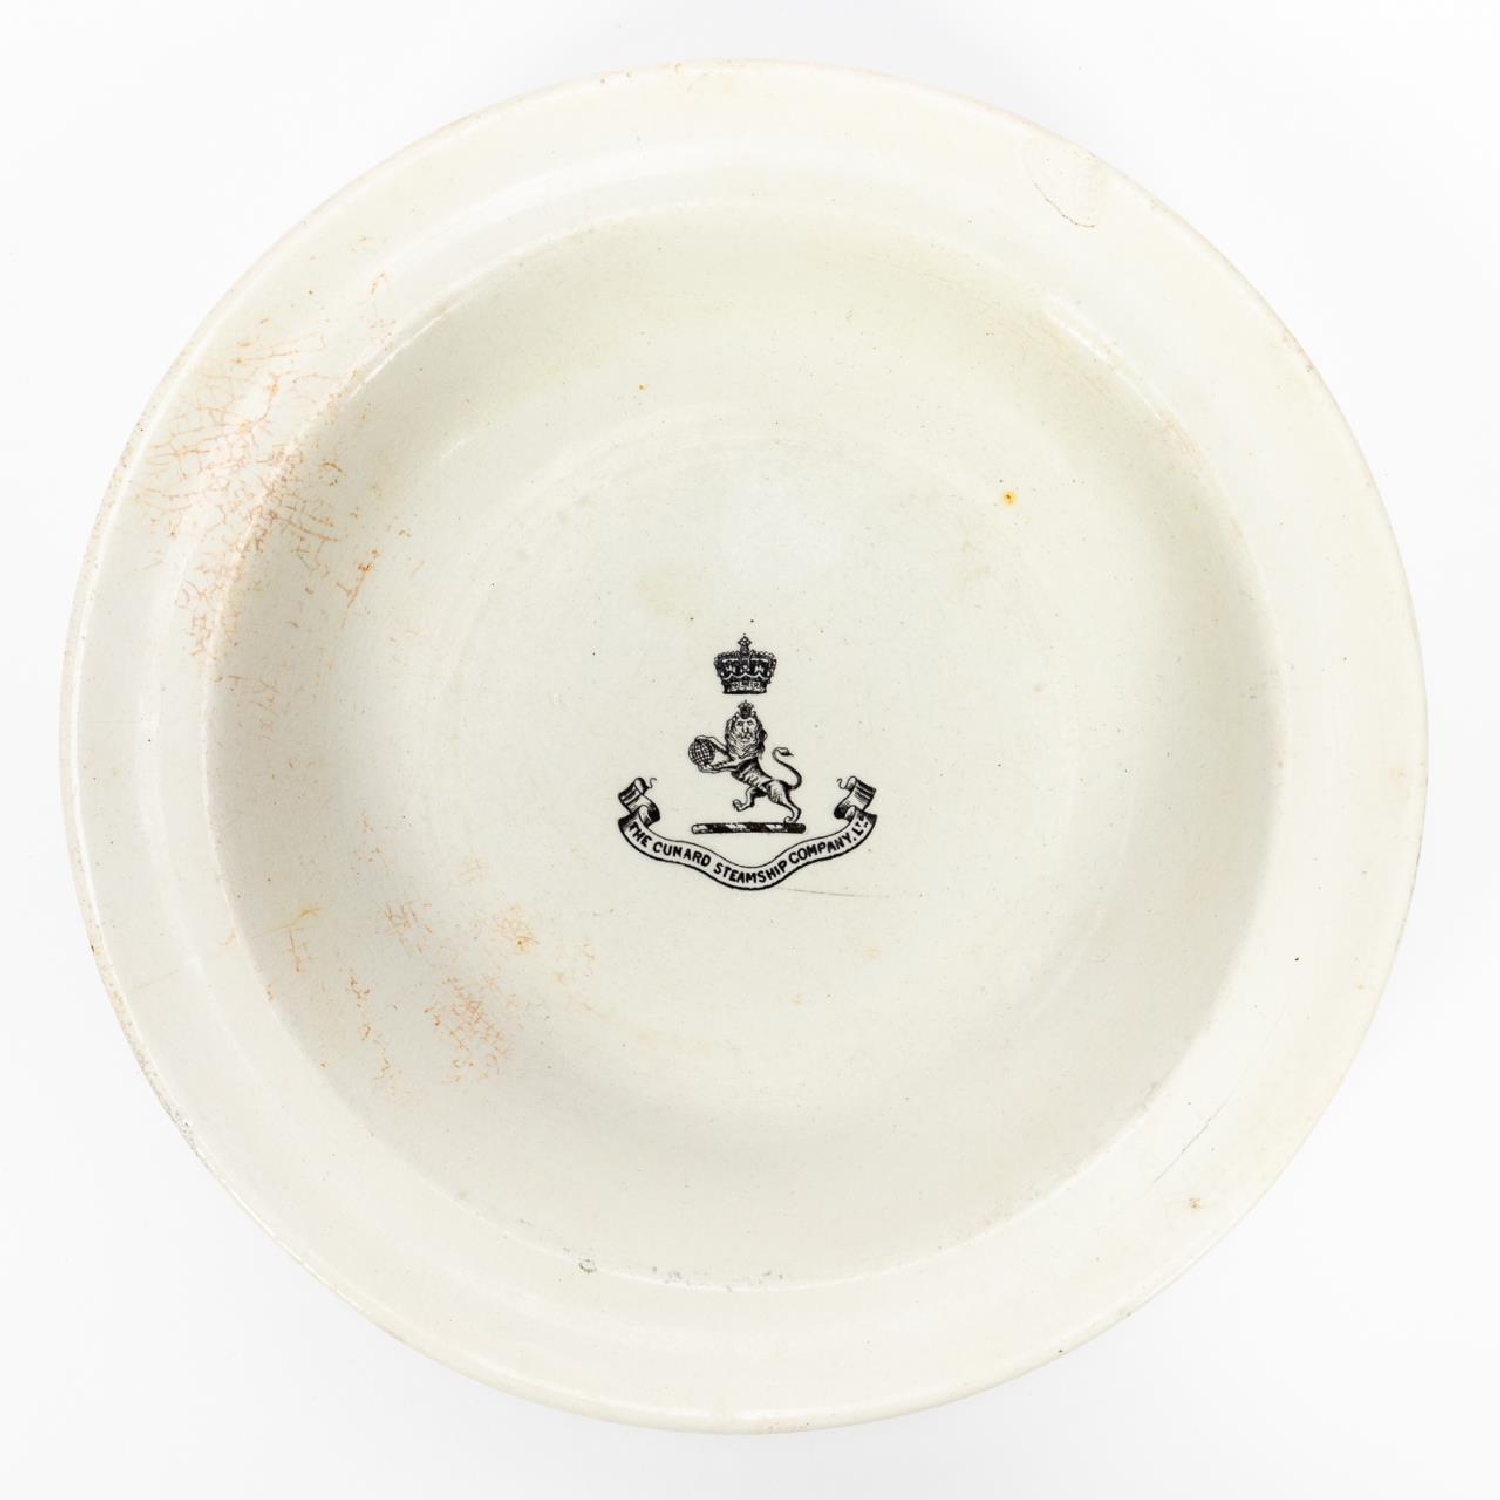 RMS CARPATHIA, SALVAGED THIRD CLASS BOWL WITH LOGO